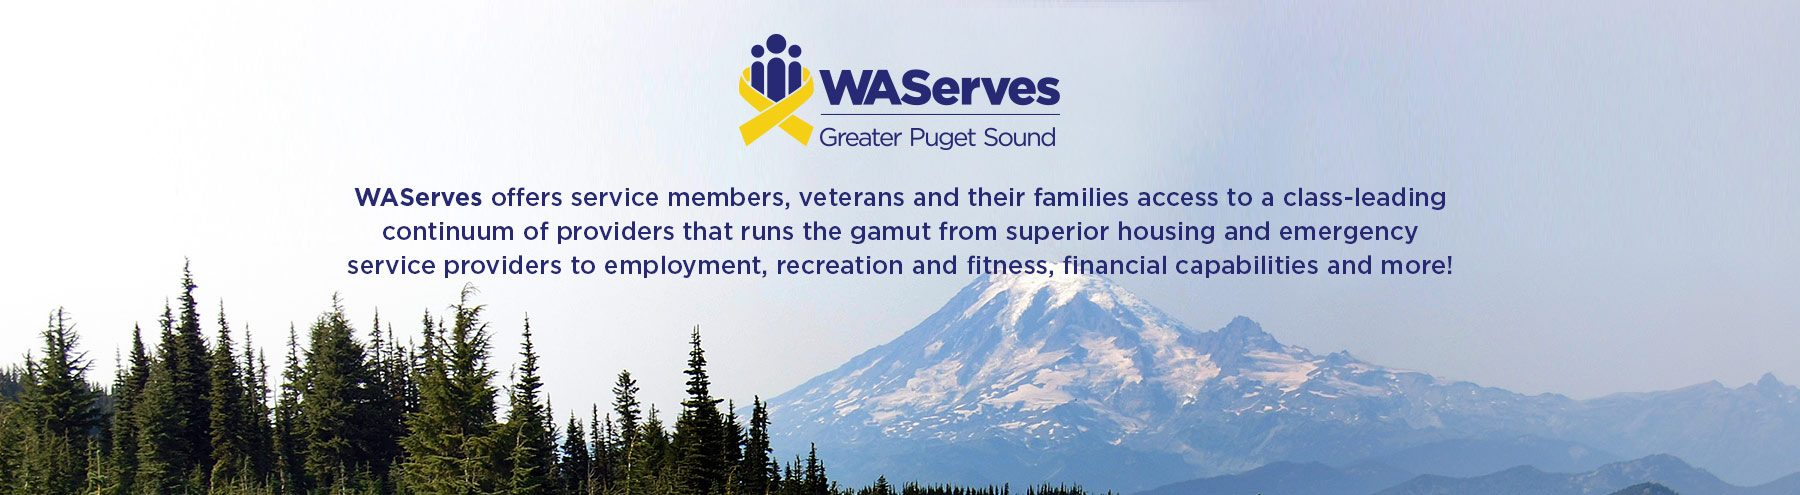 WAServes offers service members, veterans, and their families access to a continuum of providers